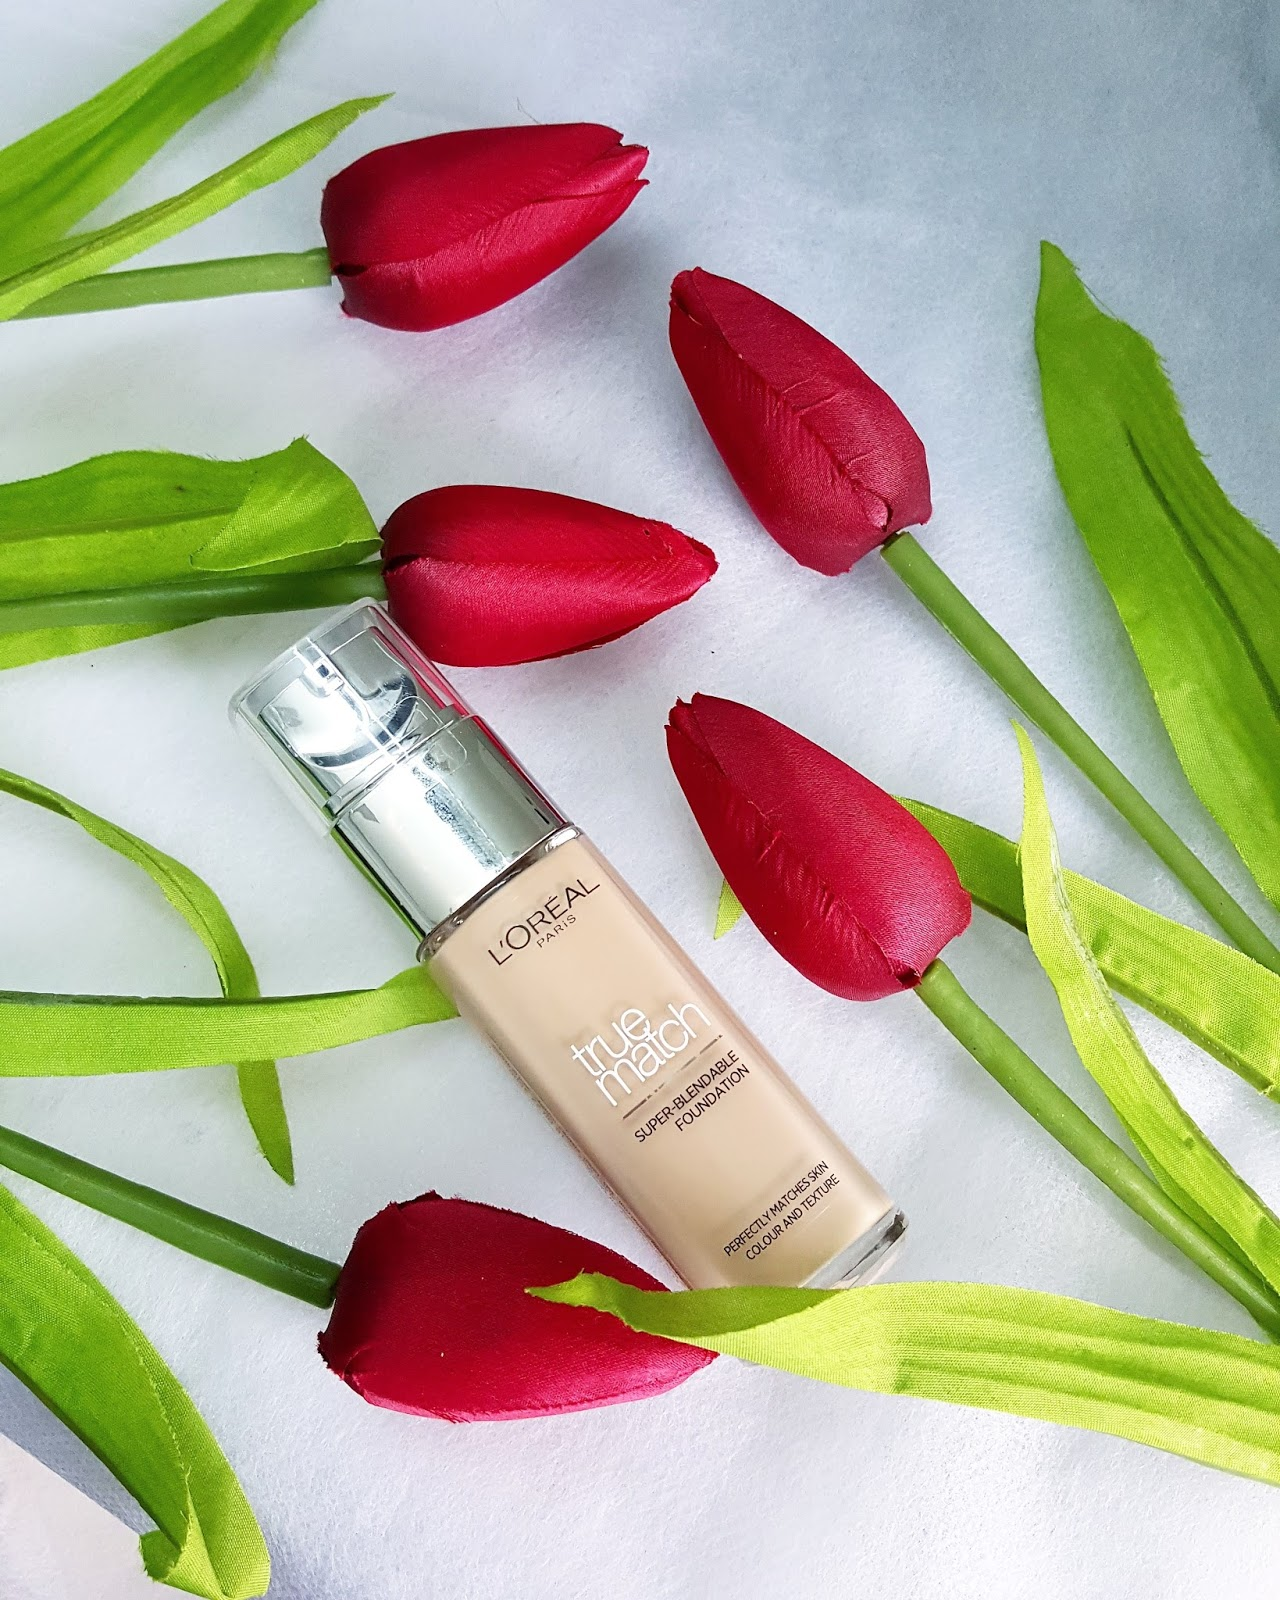 NEW L'OREAL TRUE MATCH SUPER BLENDABLE FOUNDATION REVIEW